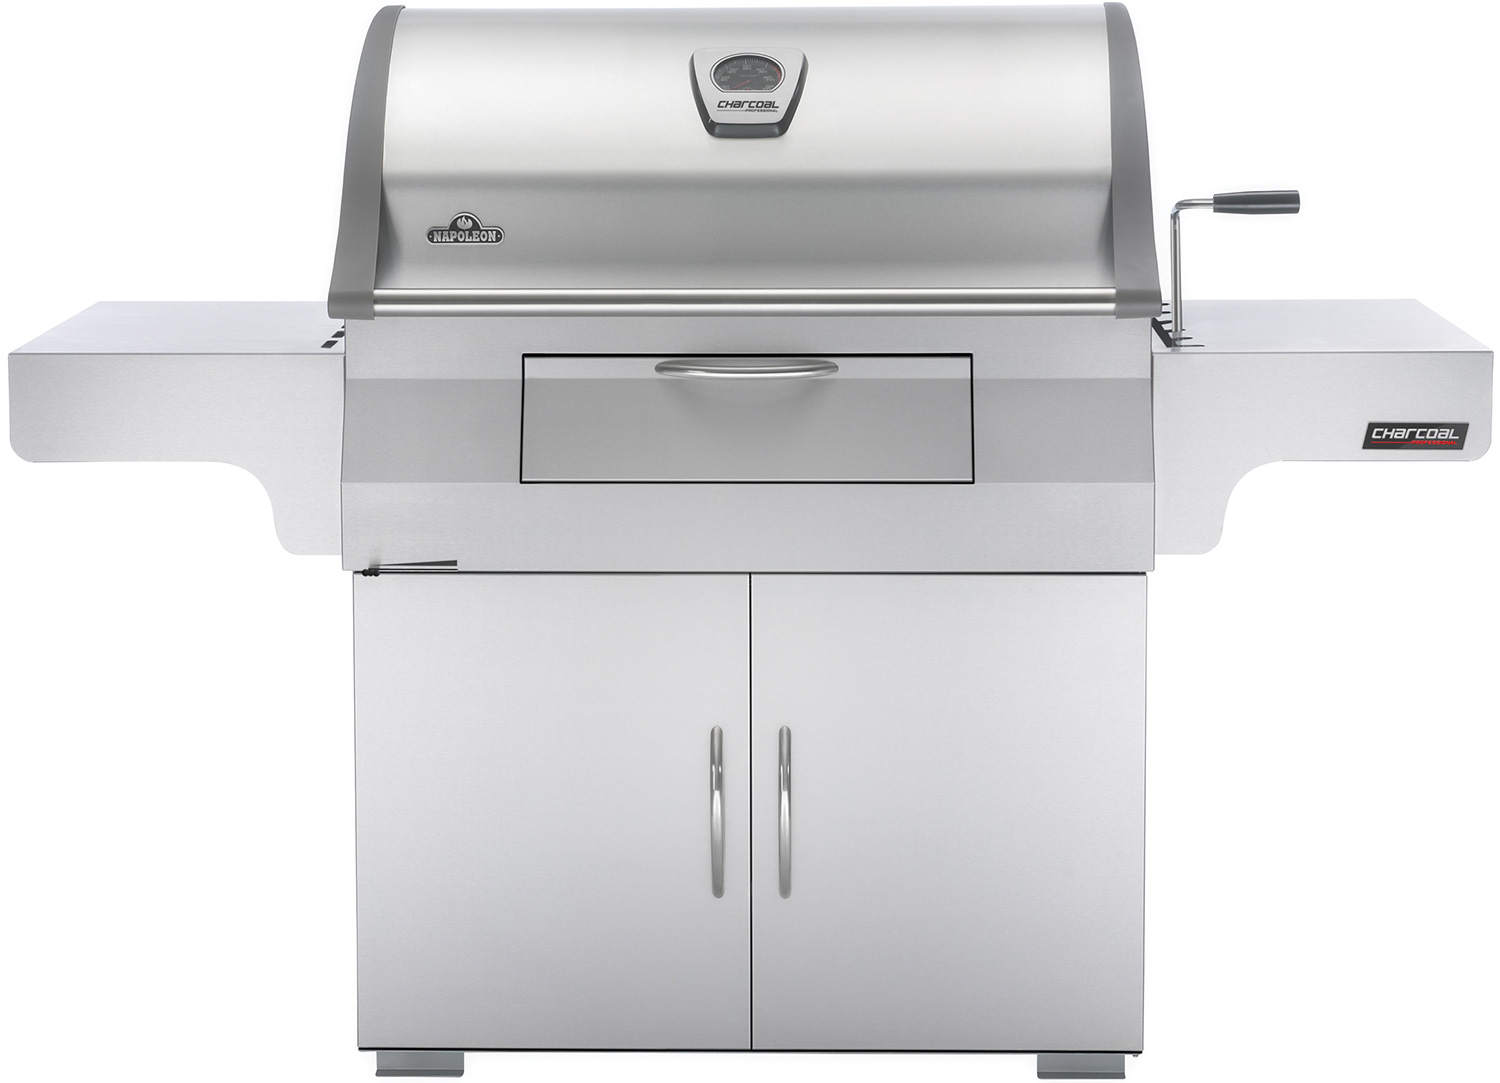 Napoleon Holzkohlegrill Anleitung : Napoleon charcoal professional edelstahl holzkohlegrill pro css